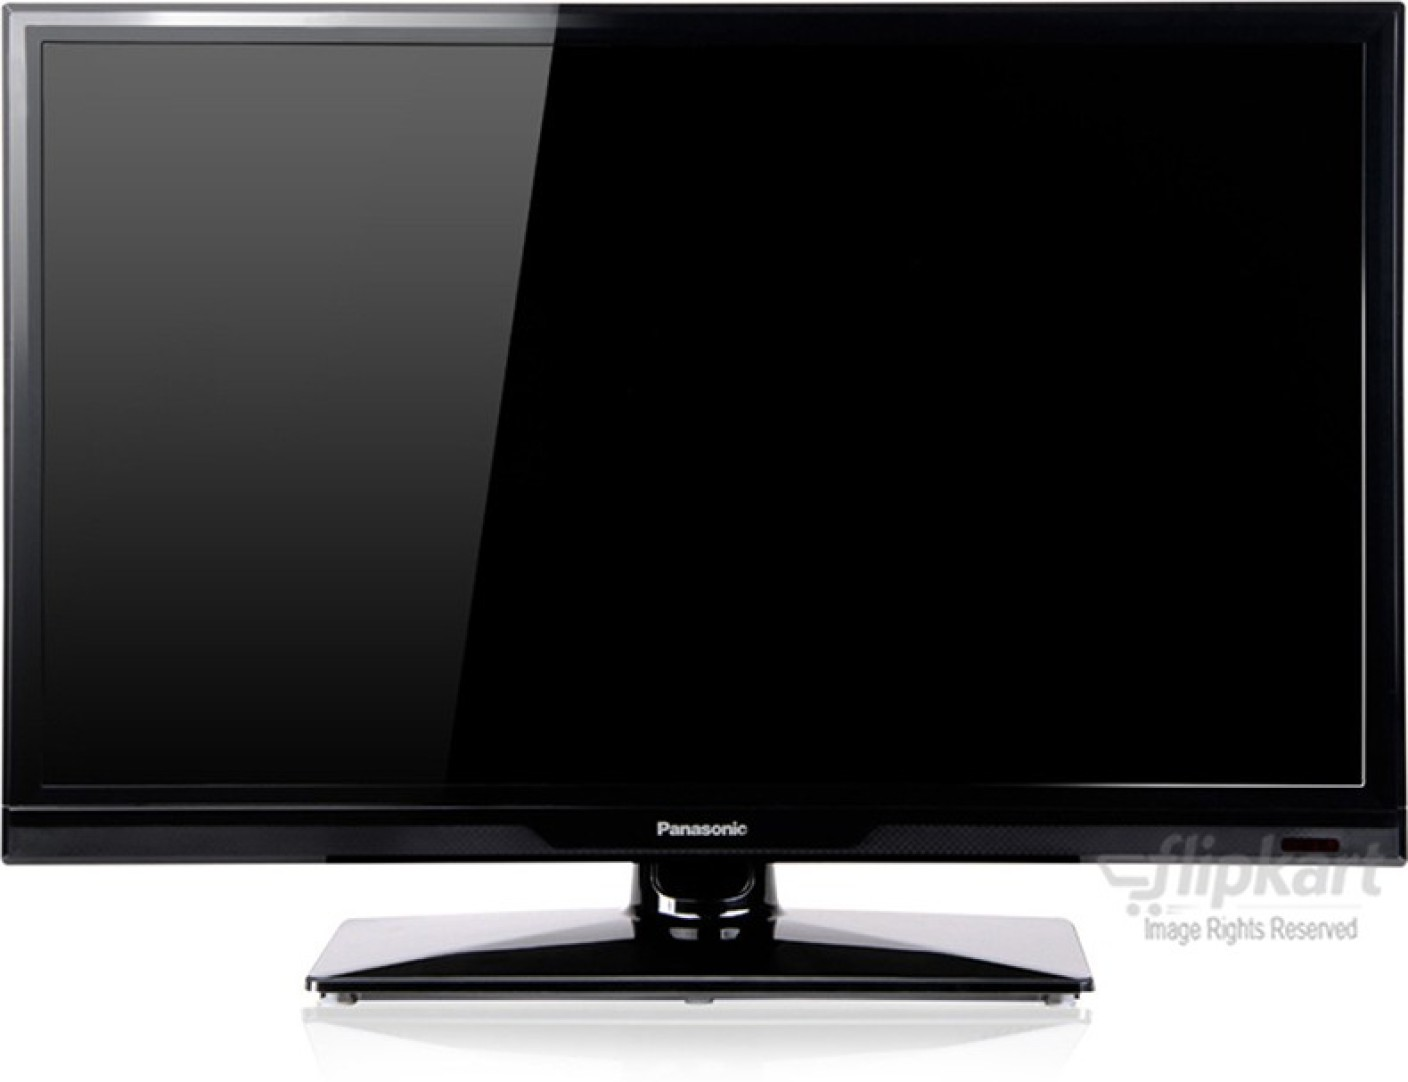 panasonic cm 28 inch hd ready led tv online at best prices in india. Black Bedroom Furniture Sets. Home Design Ideas